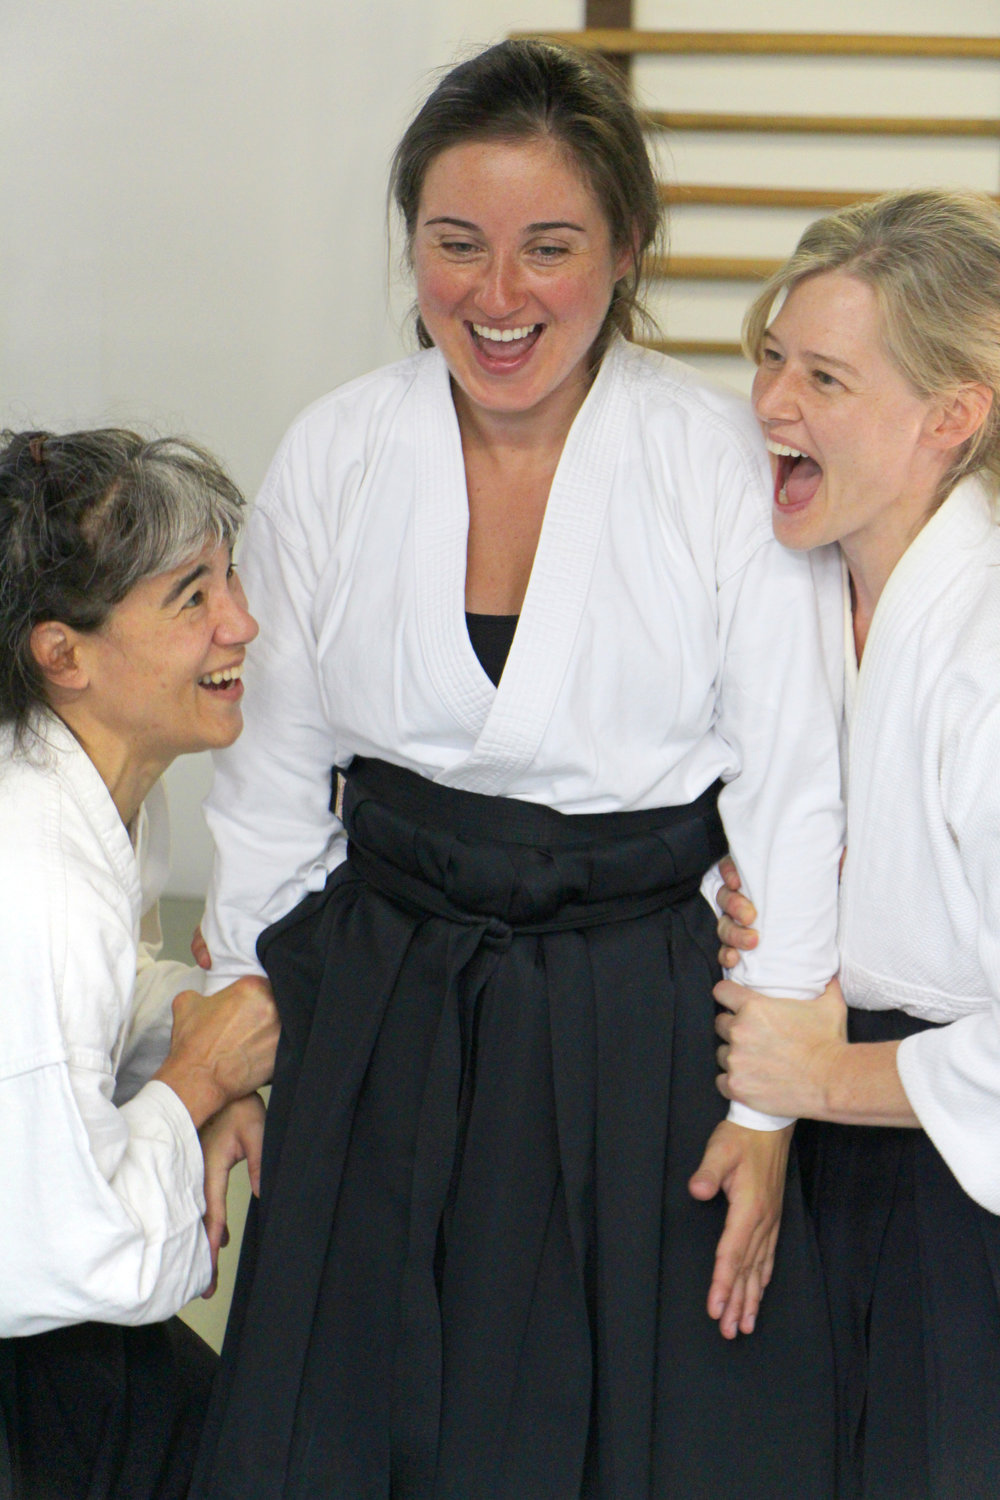 Lincoln Sensei demonstrating a center-building exercise called 'Unliftable Body'.